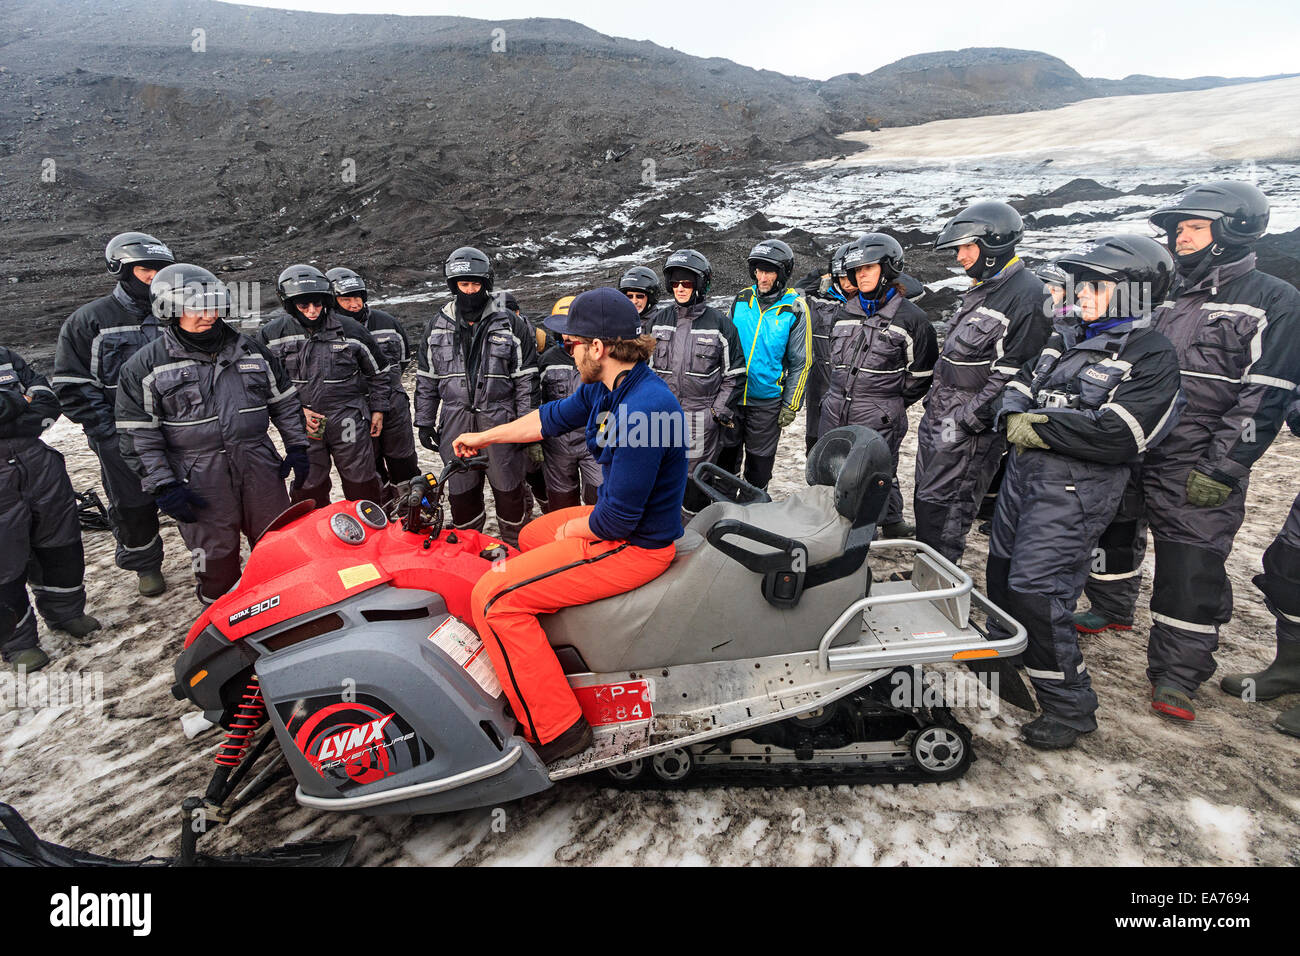 Guide instructs snowmobilers on Mýrdalsjökull, a glacier in the south of Iceland. - Stock Image